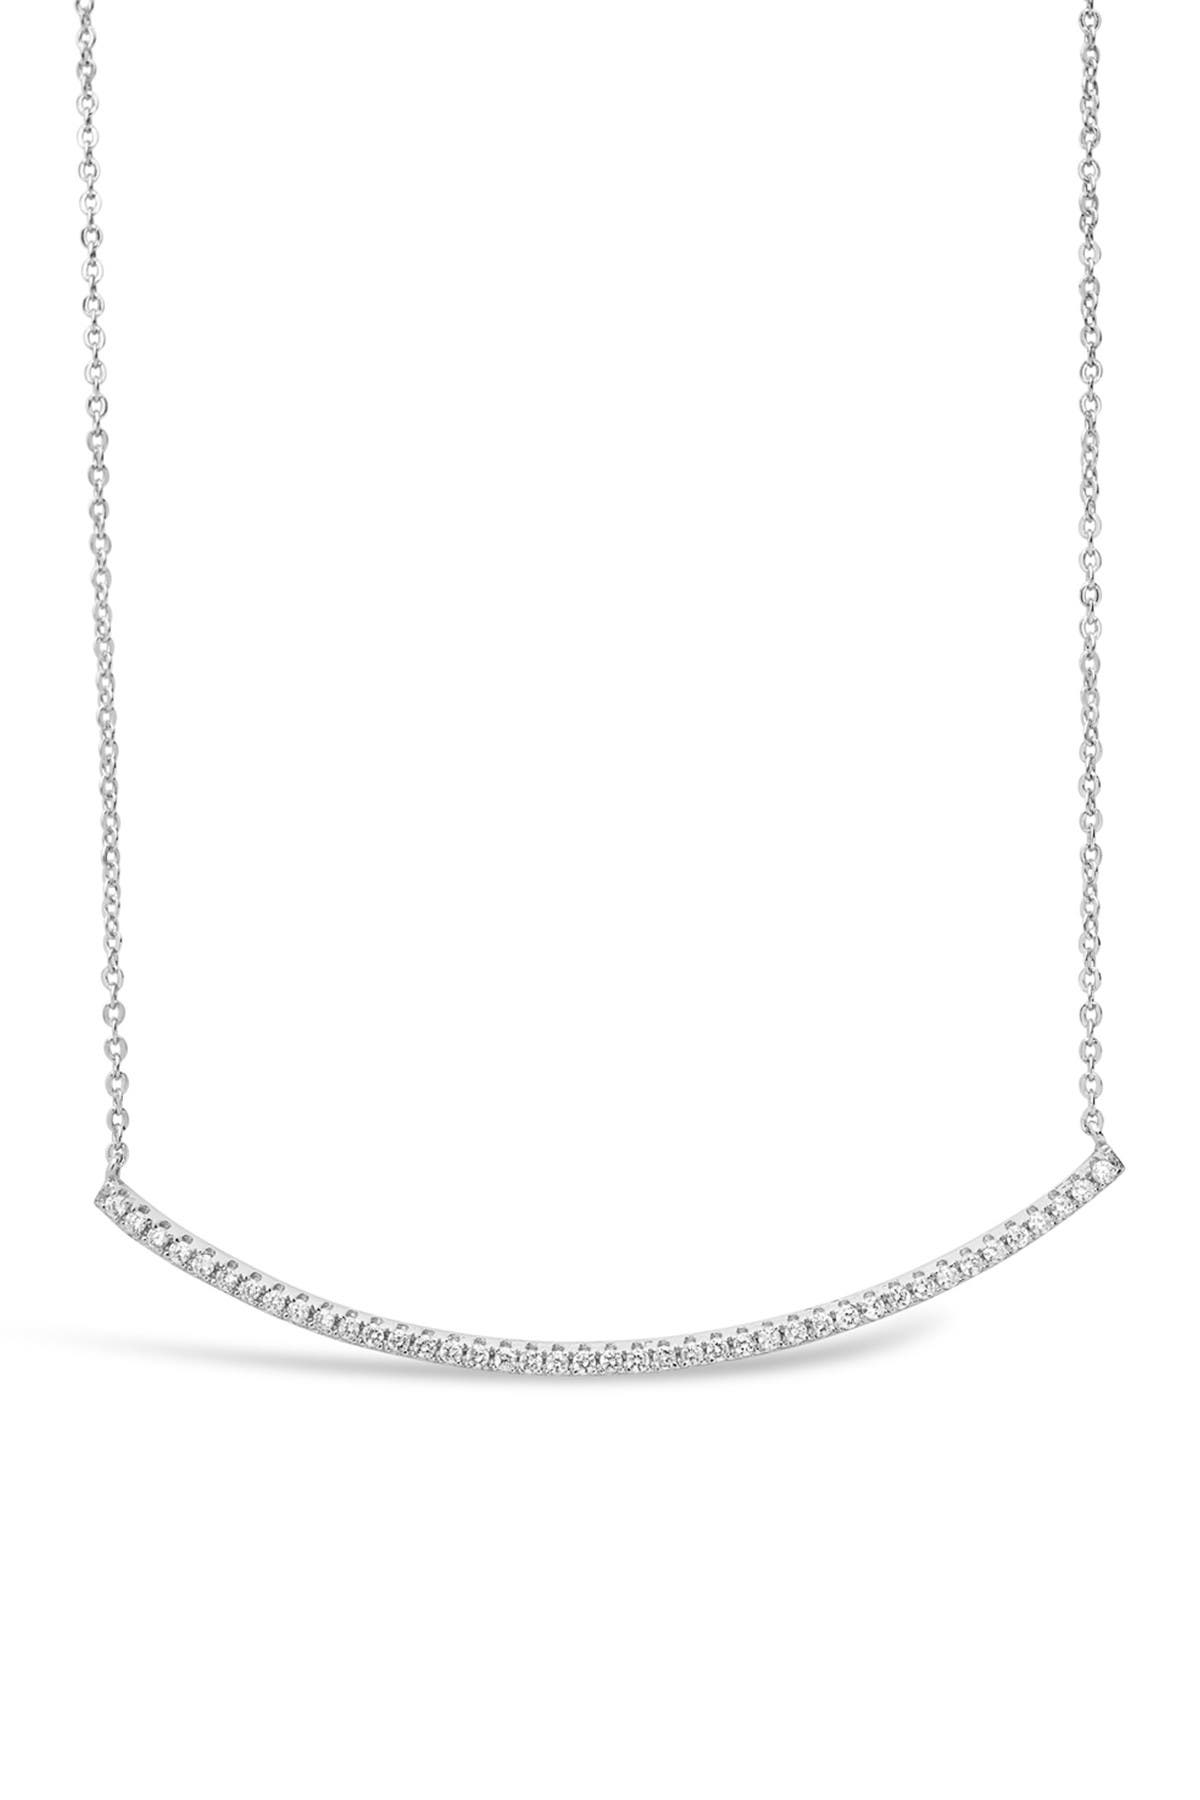 Image of Sterling Forever Rhodium Plated Brass CZ Curved Bar Necklace